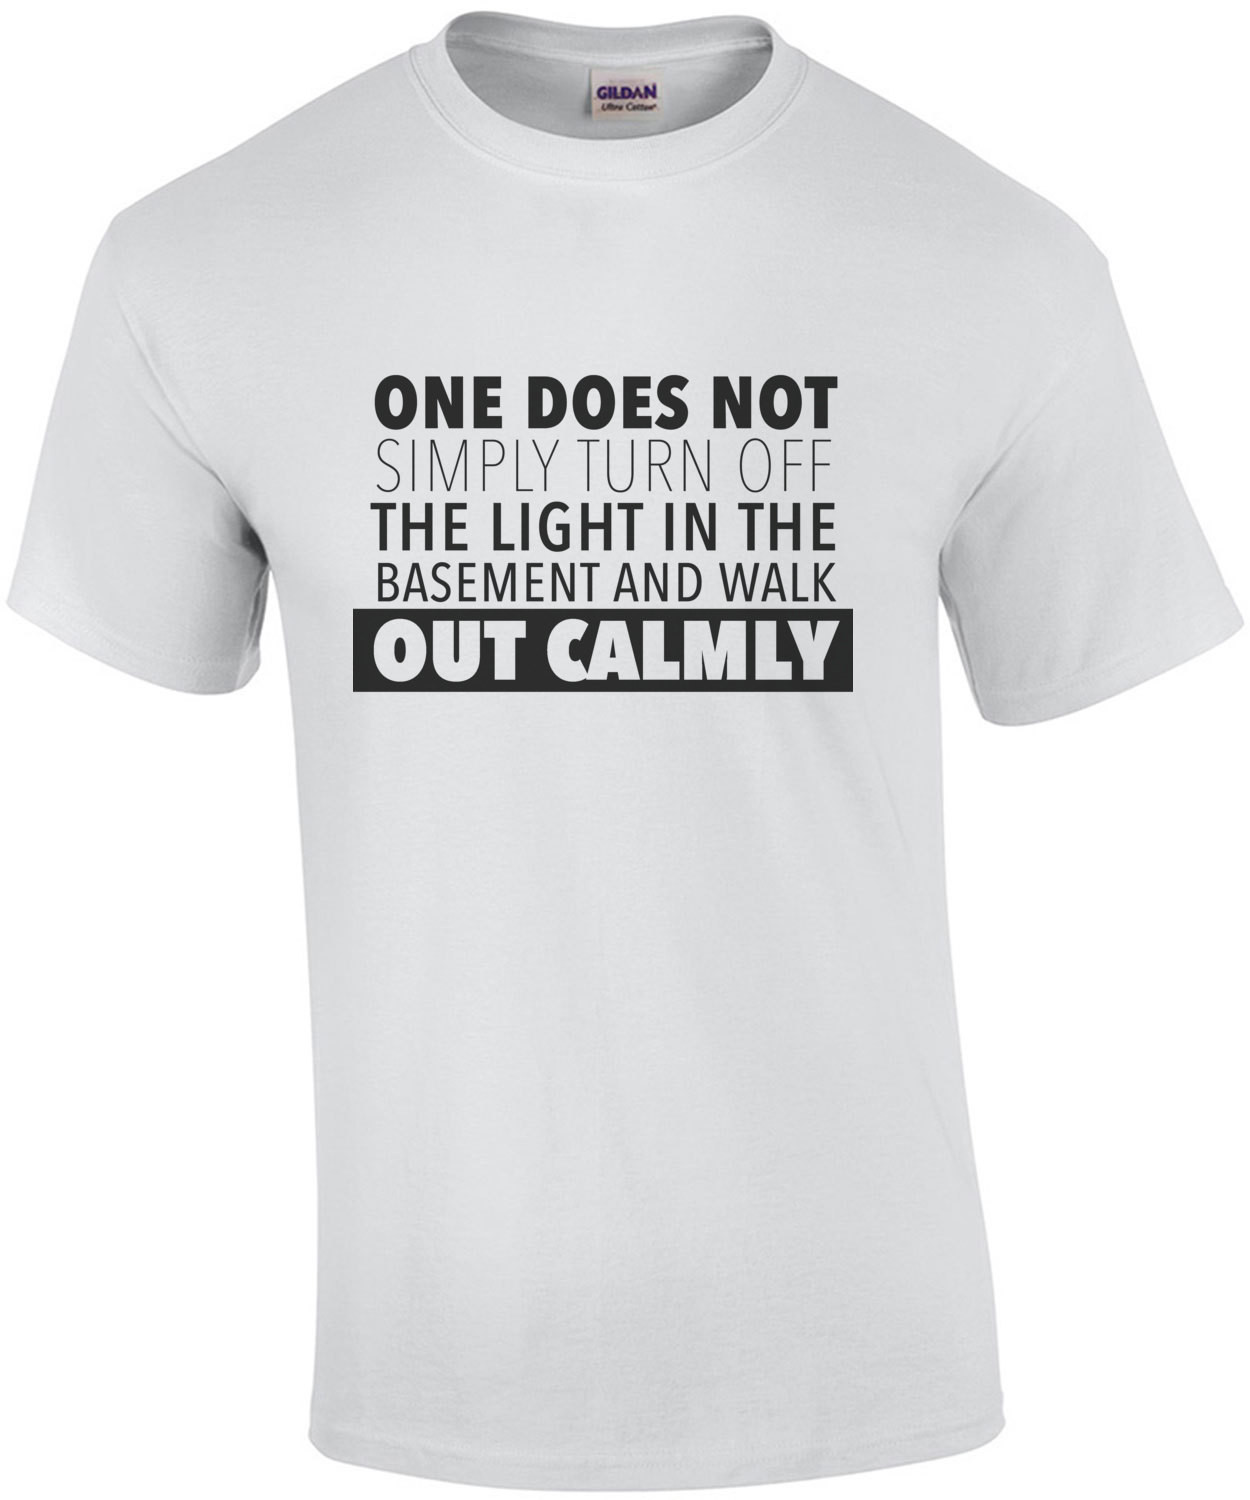 One does not simply turn off the light in the basement and walk out calmly - funny t-shirt